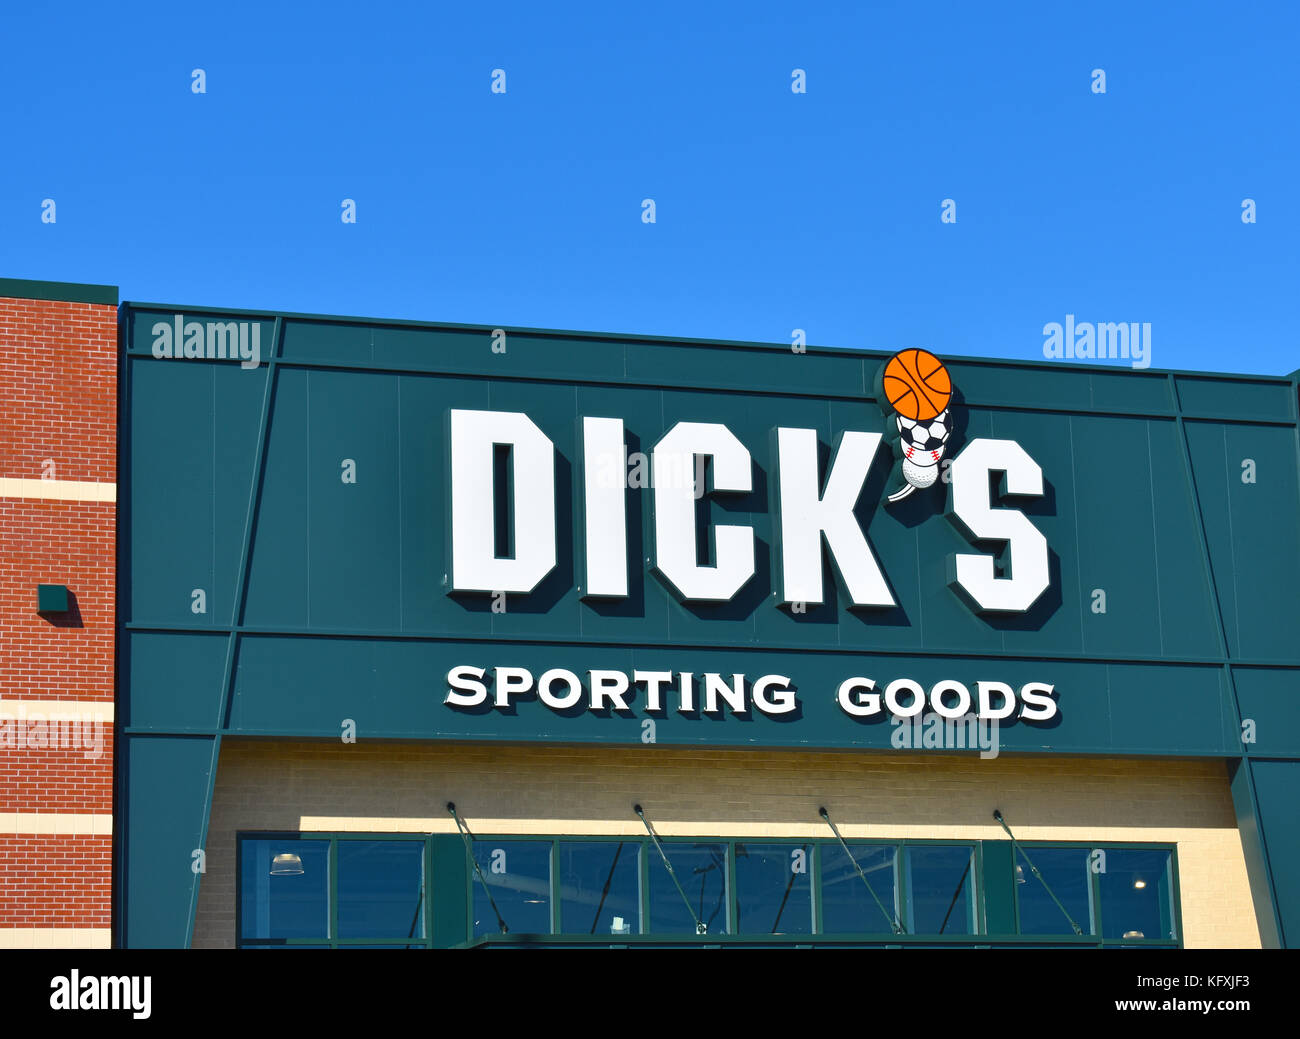 Dick's sporting goods removed hunting category, including guns